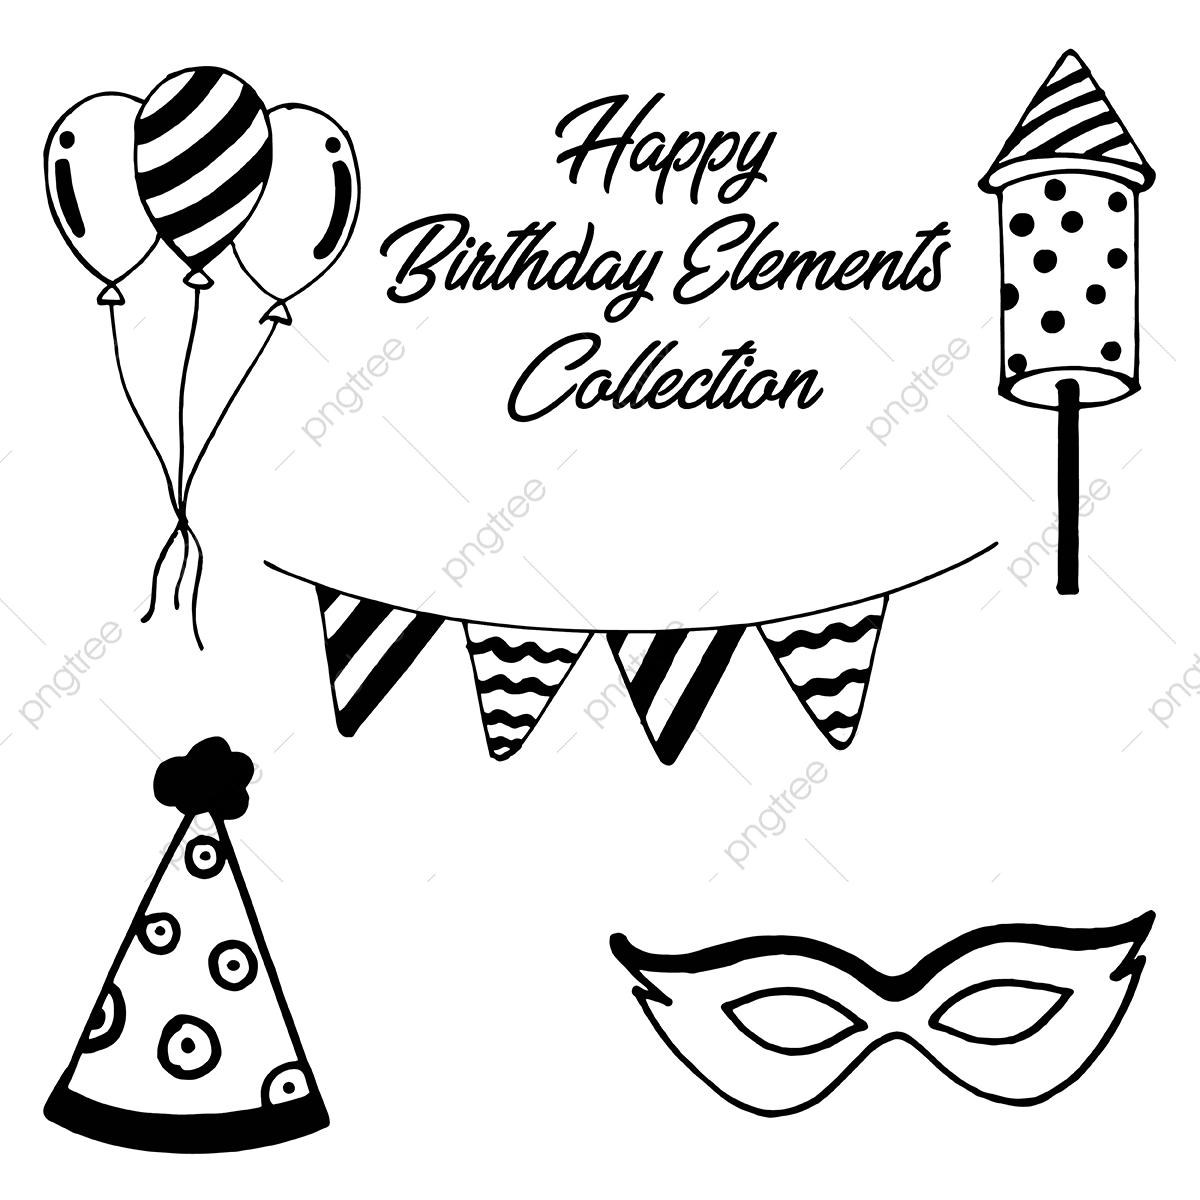 Party Hat Clipart Black And White Hand Drawn Birthday Elements Collection Black White Sketch Png